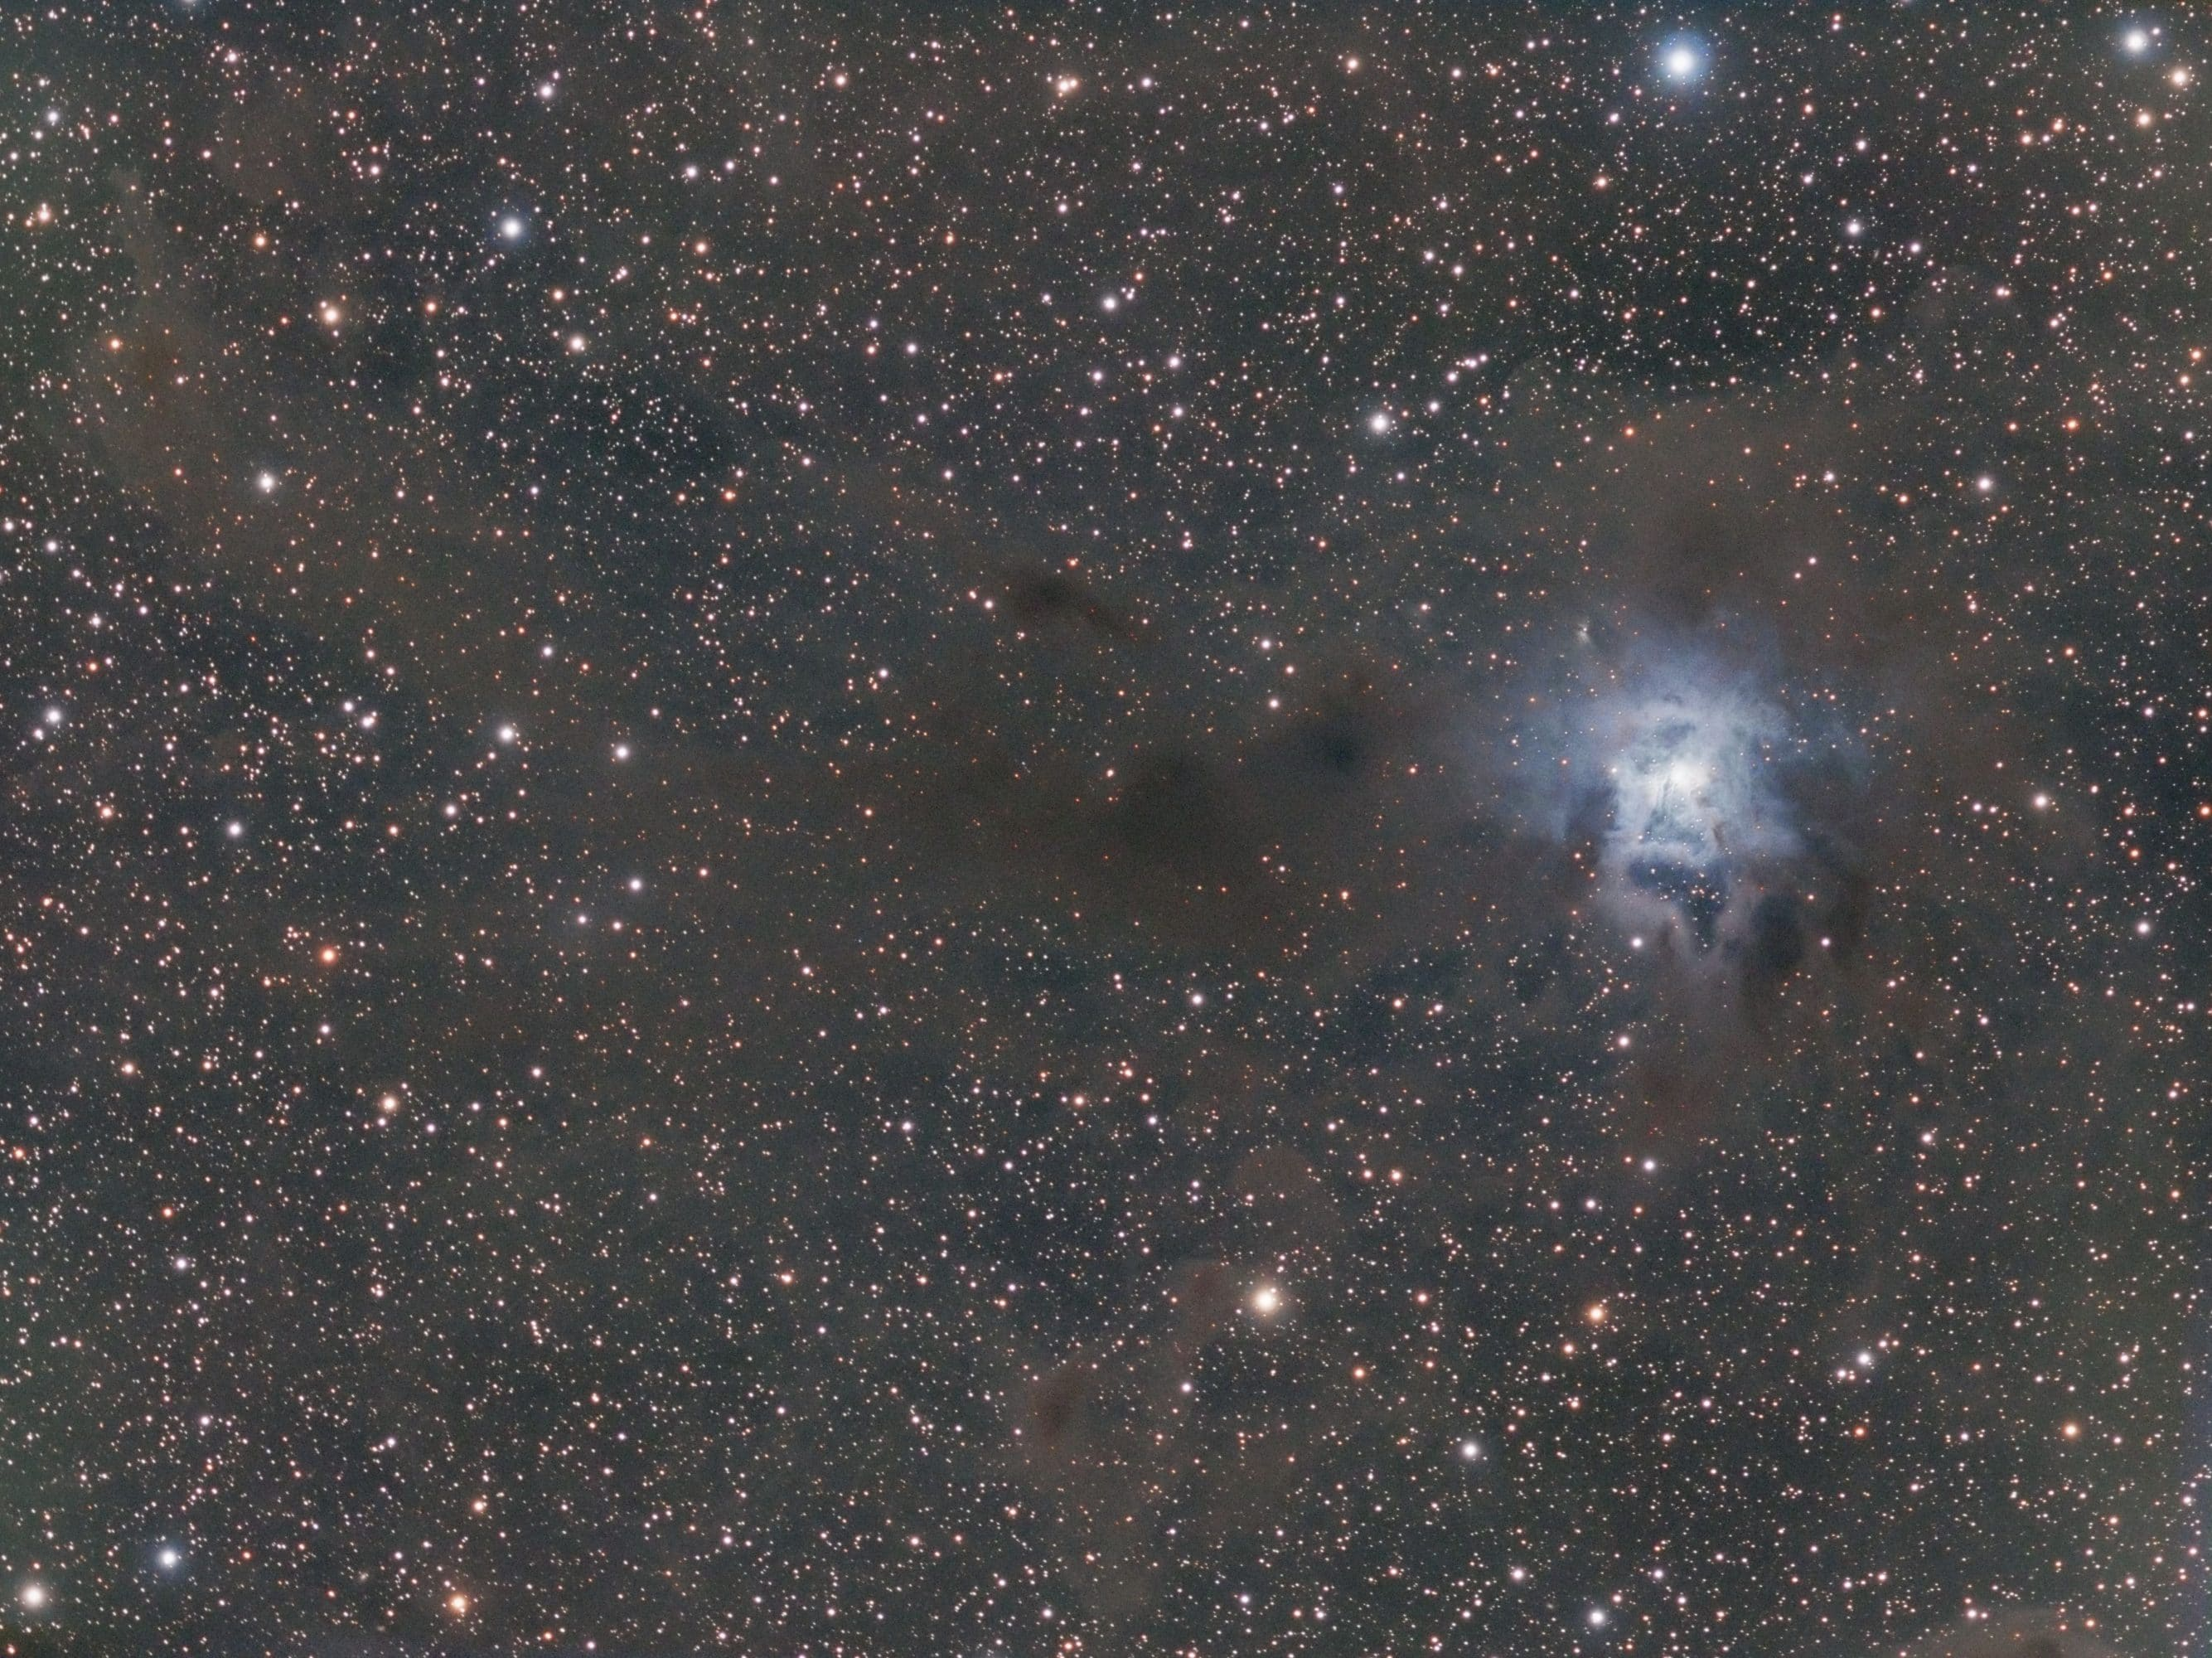 Iris Nebula NGC 7023 taken from Oliphant, Ontario in September 2017.